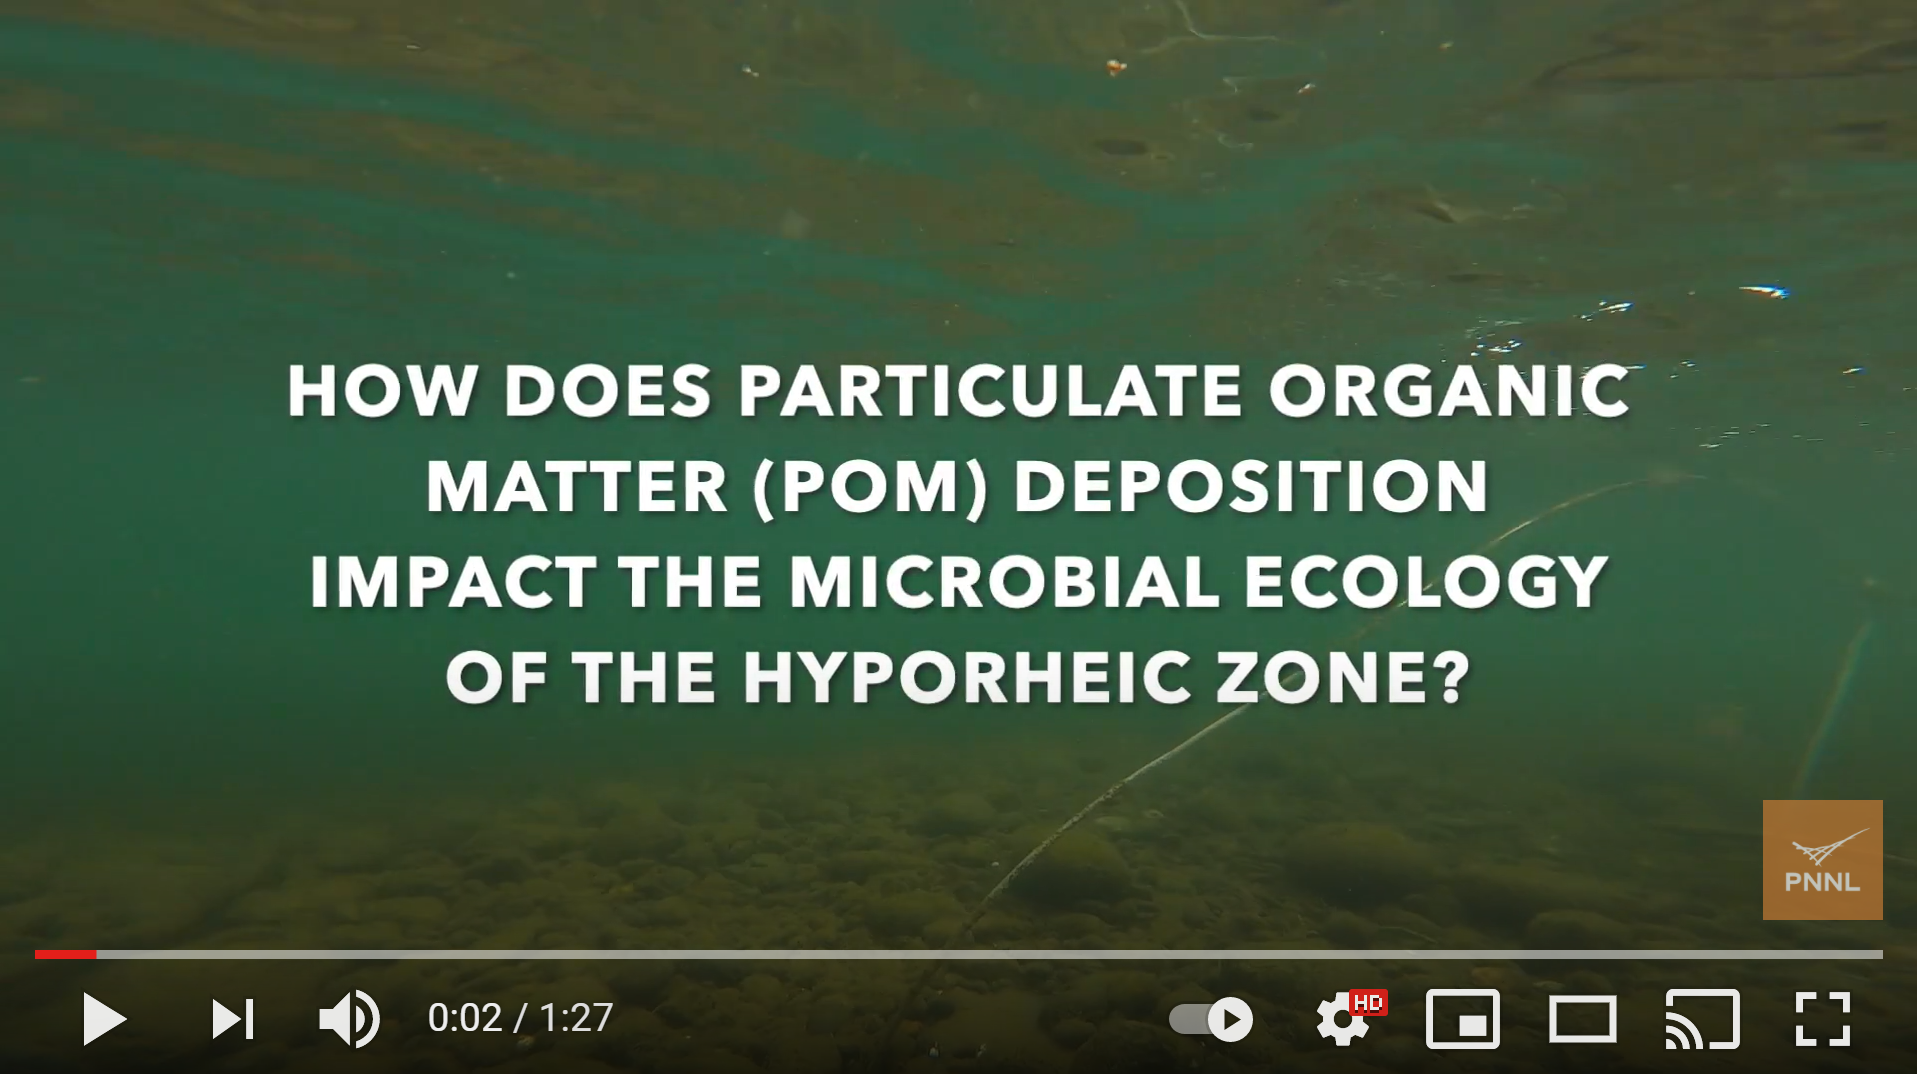 Particulate organic matter dynamics in hyporheic zone